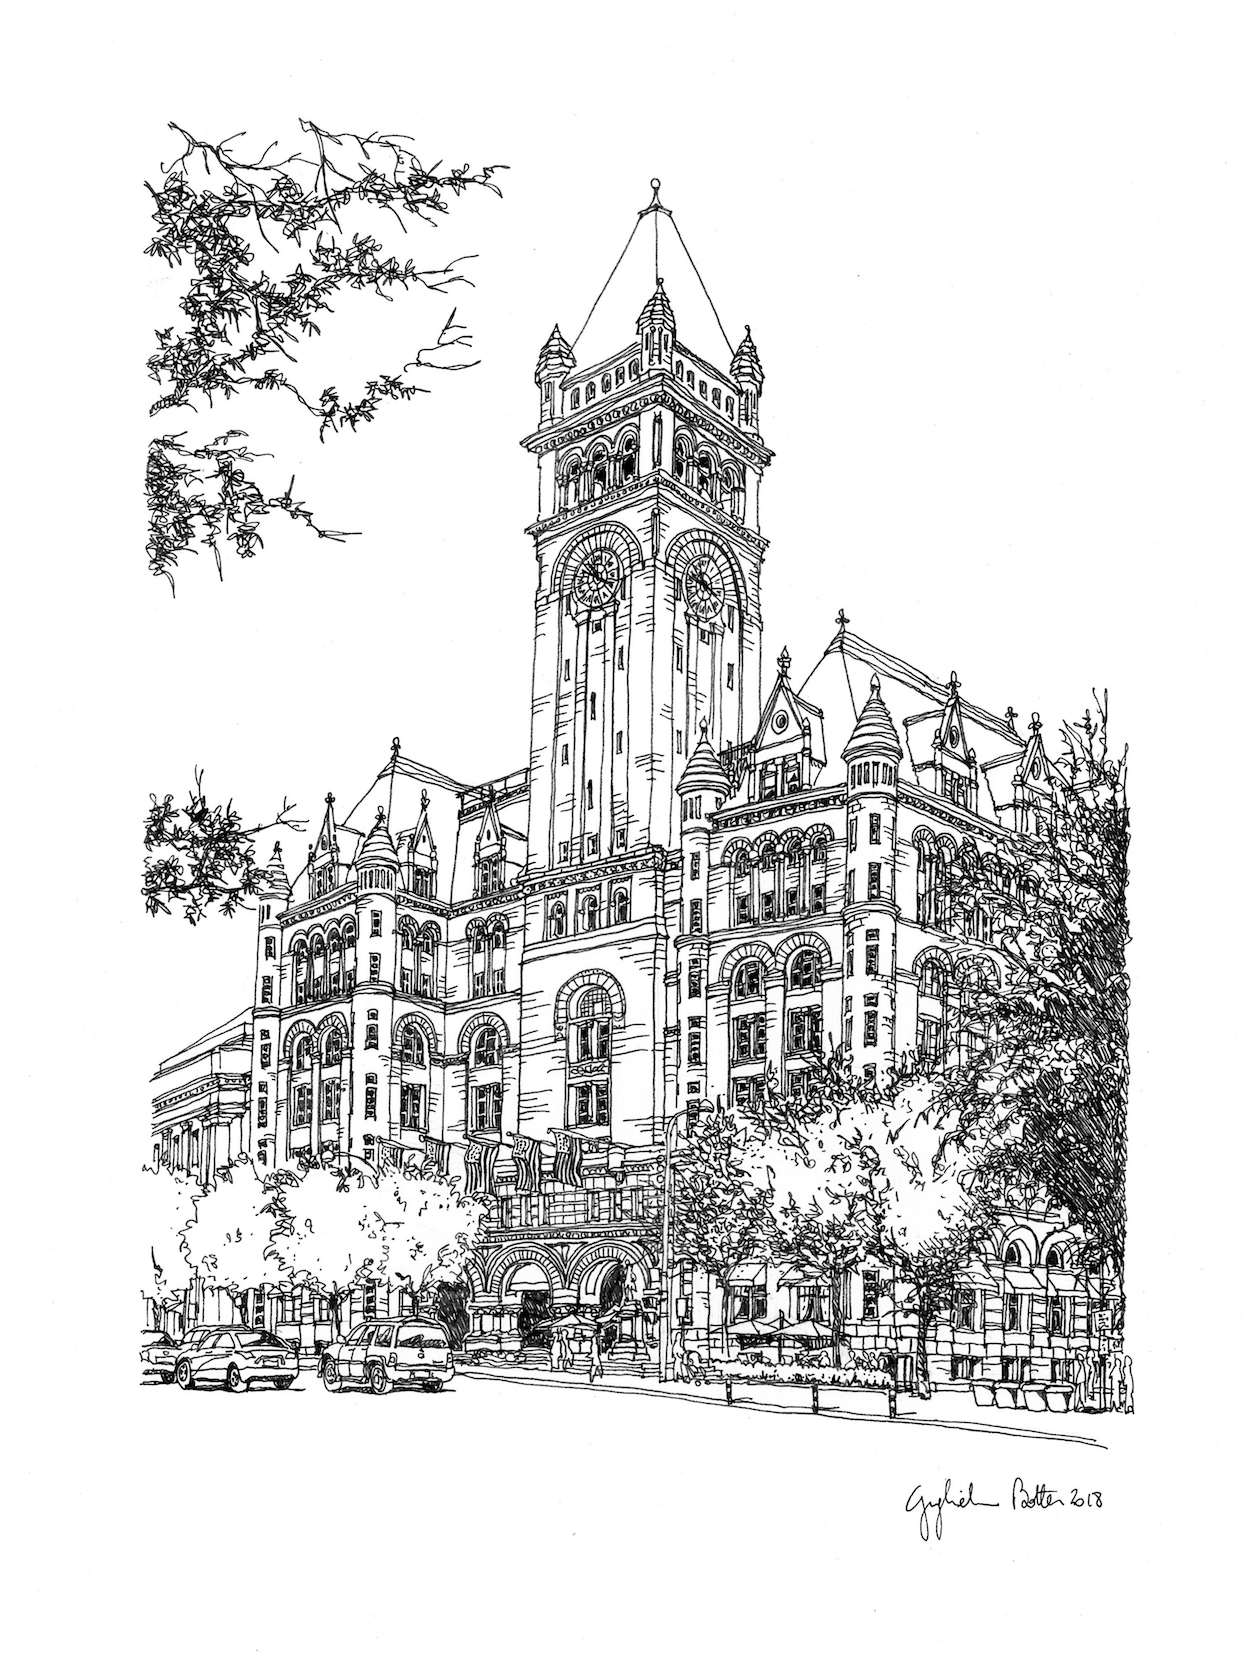 Washington DC Old Post Office, 2018, Pen & Ink, 17 x 14 inches